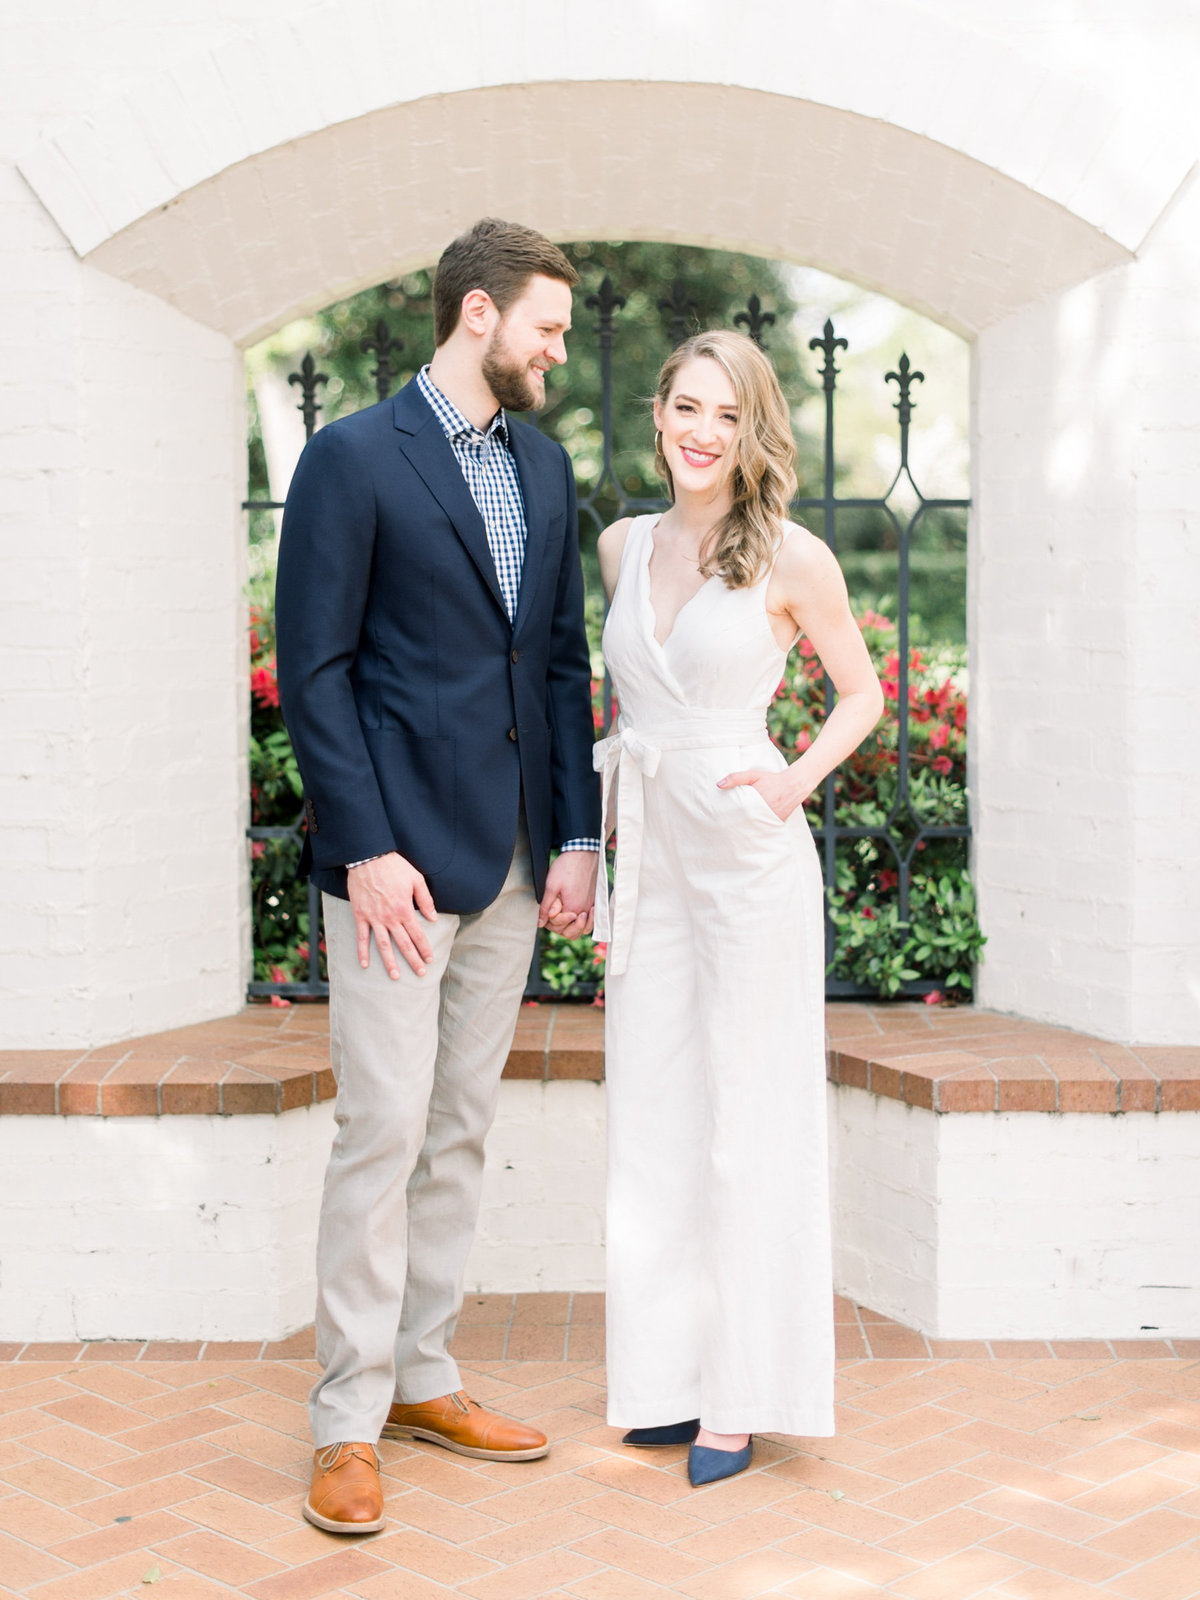 Courtney Hanson Photography - Dallas Spring Engagement Photos at Dallas Arboretum-2691